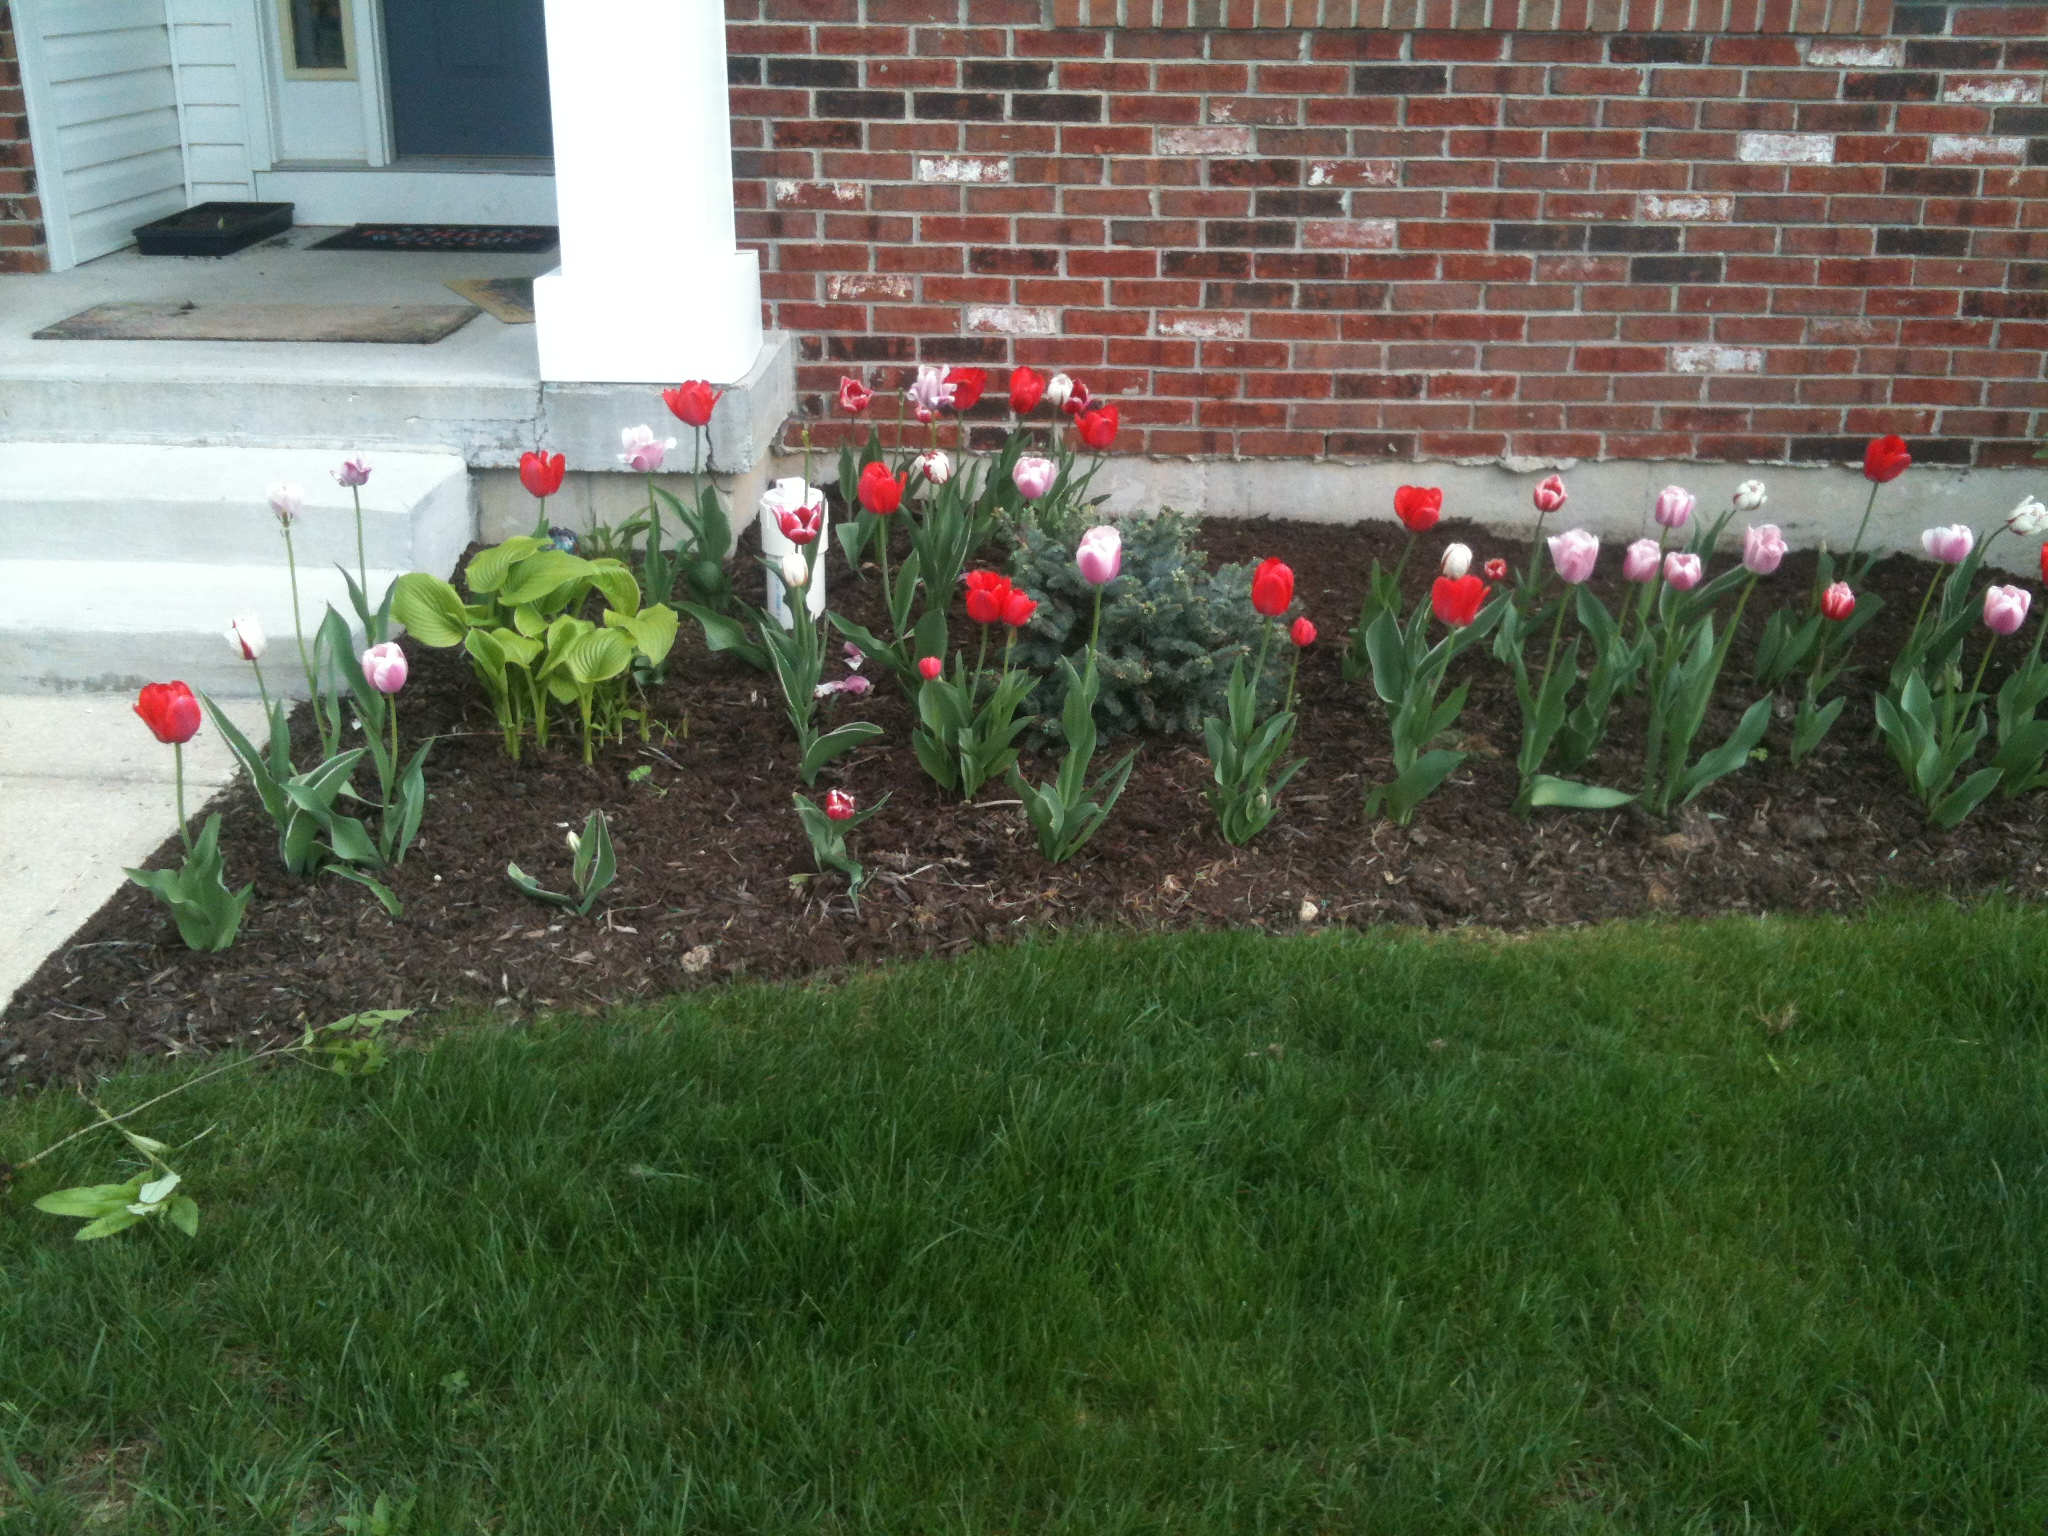 Another tulip photo